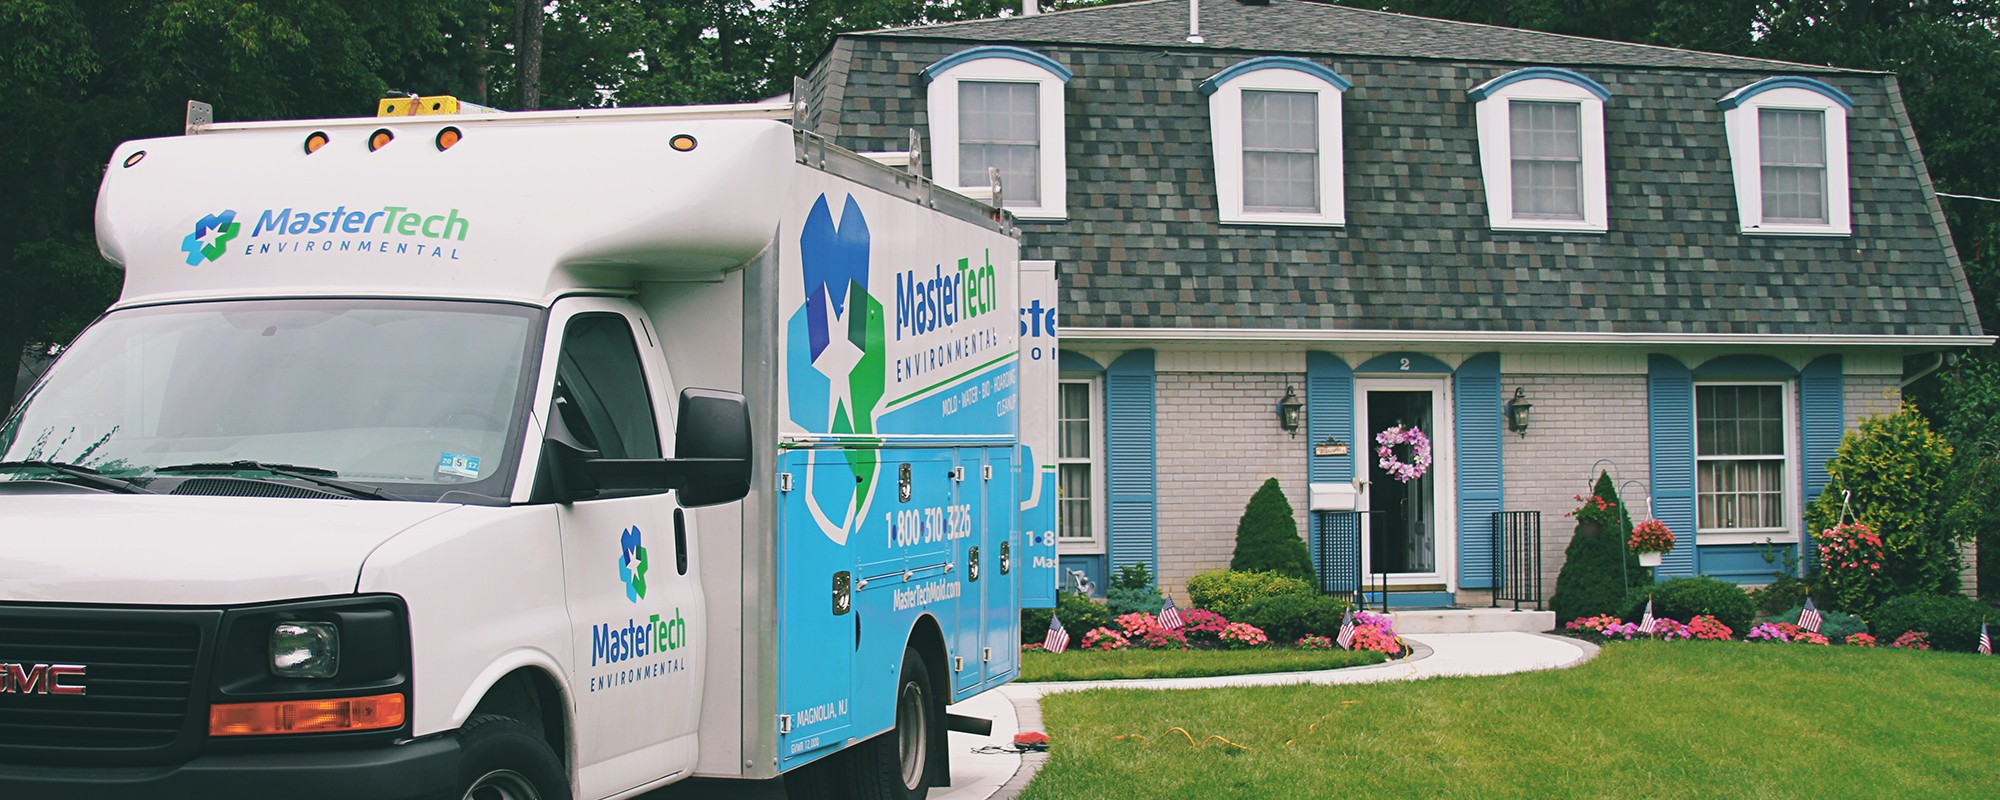 hoarding-cleanup-rental-property-nj